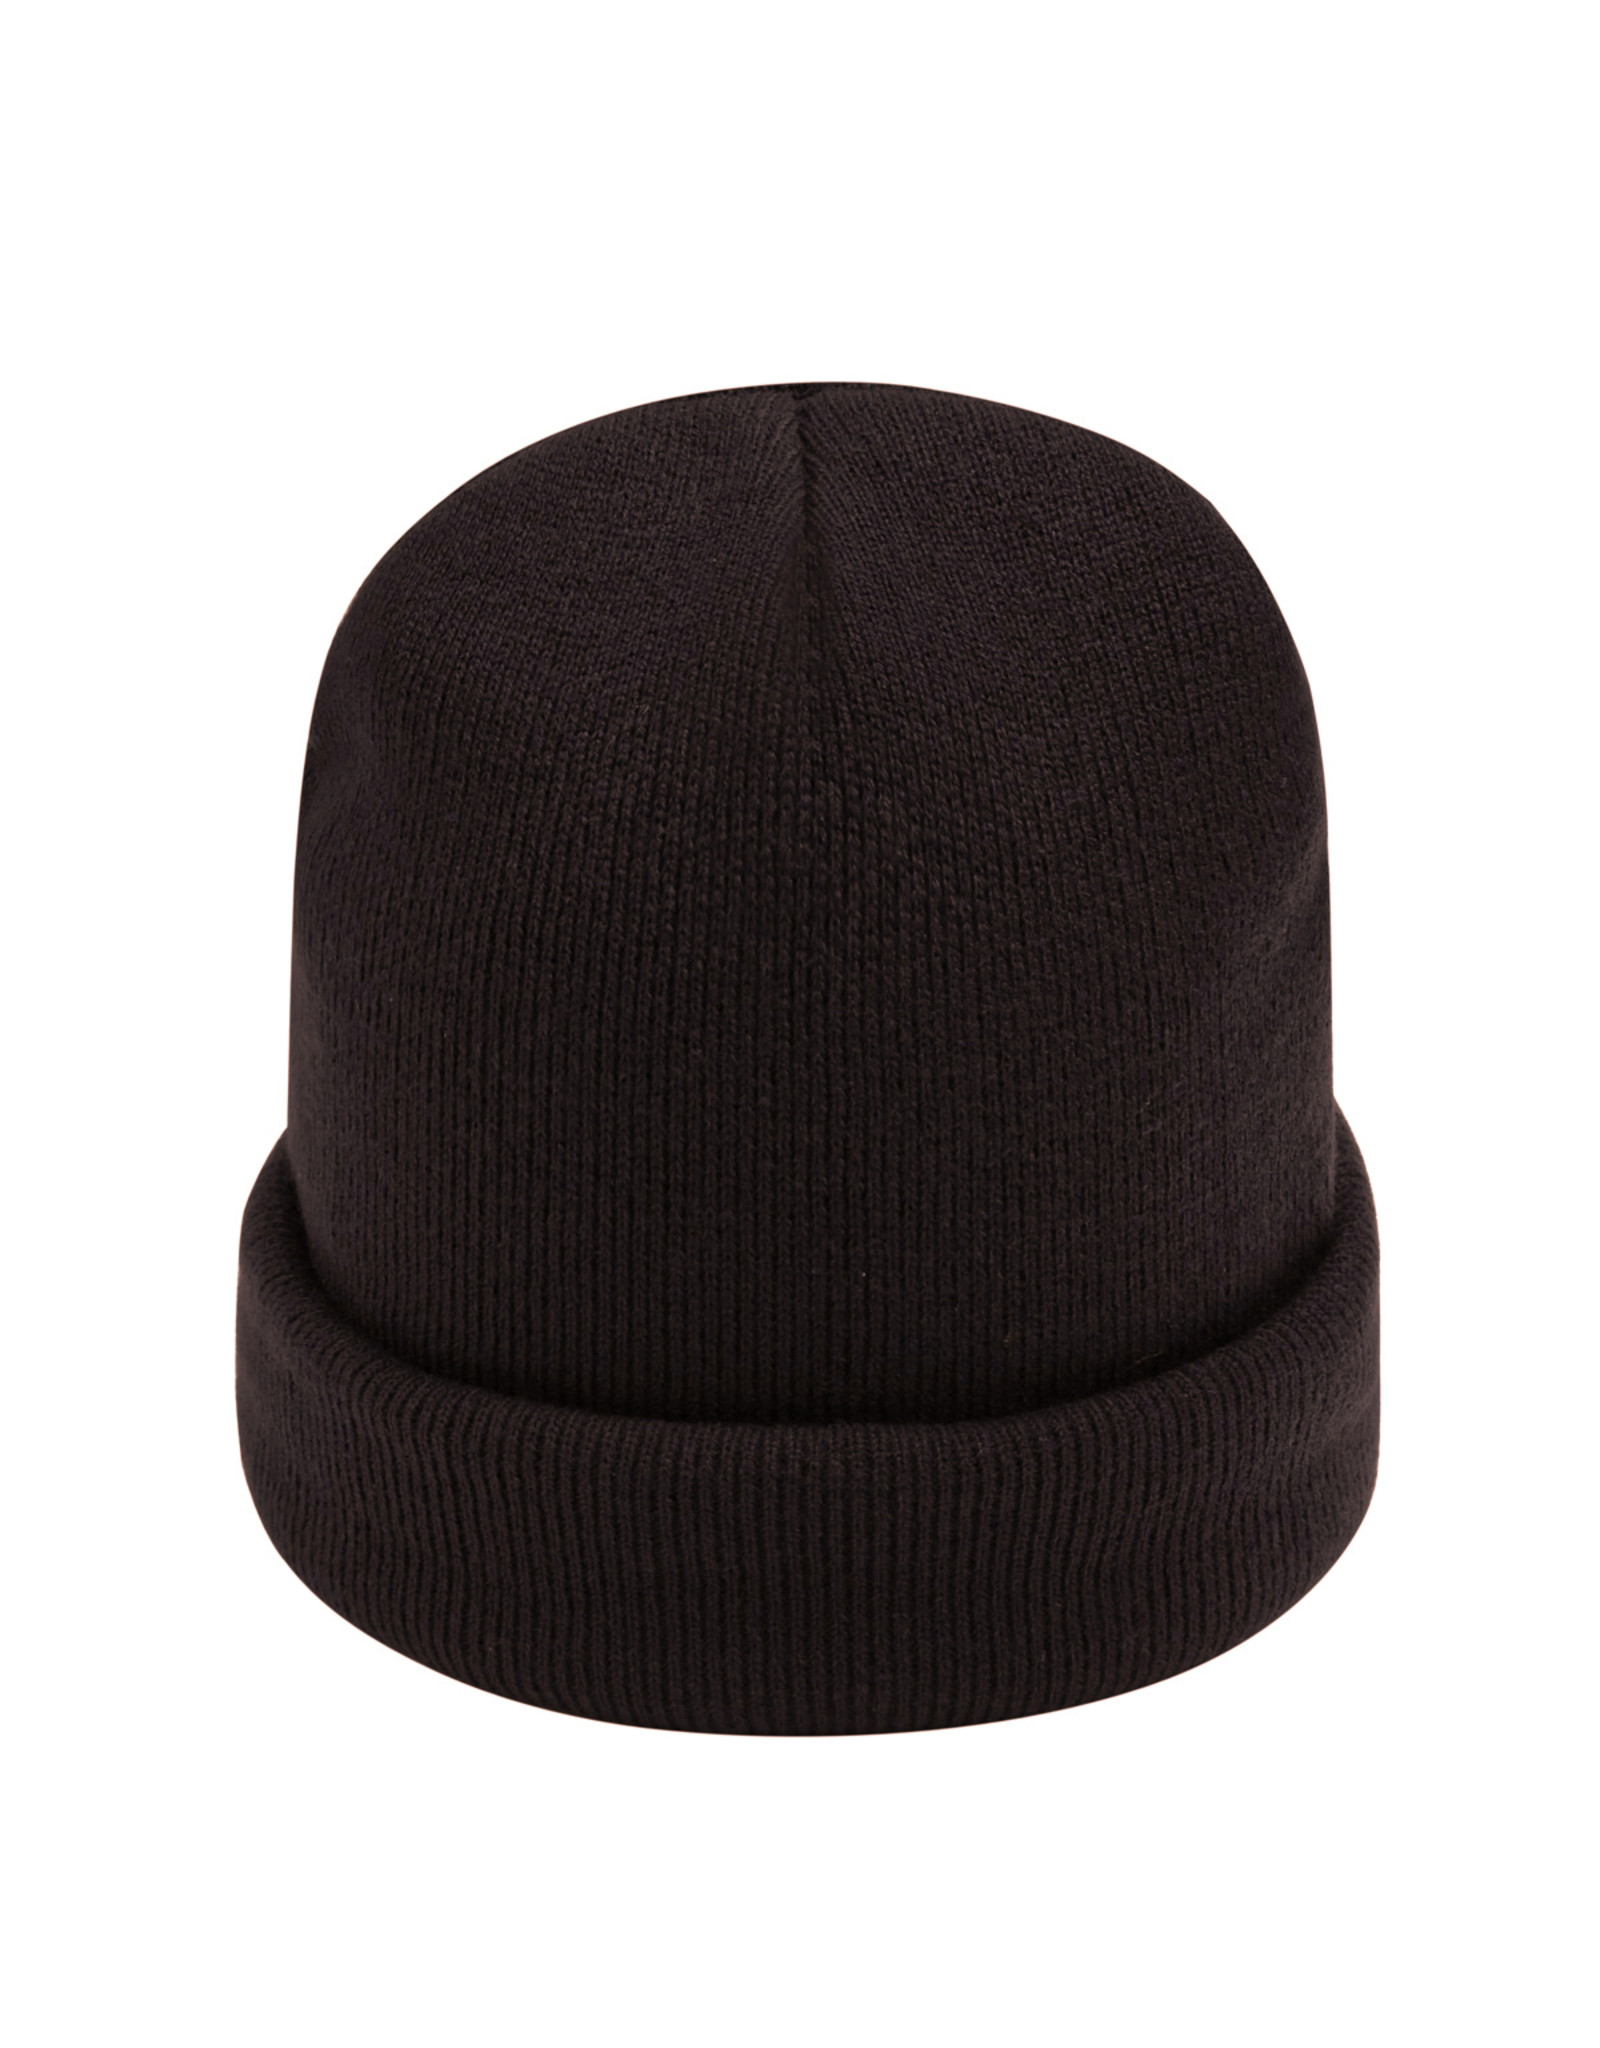 BEANIE DARK BROWN